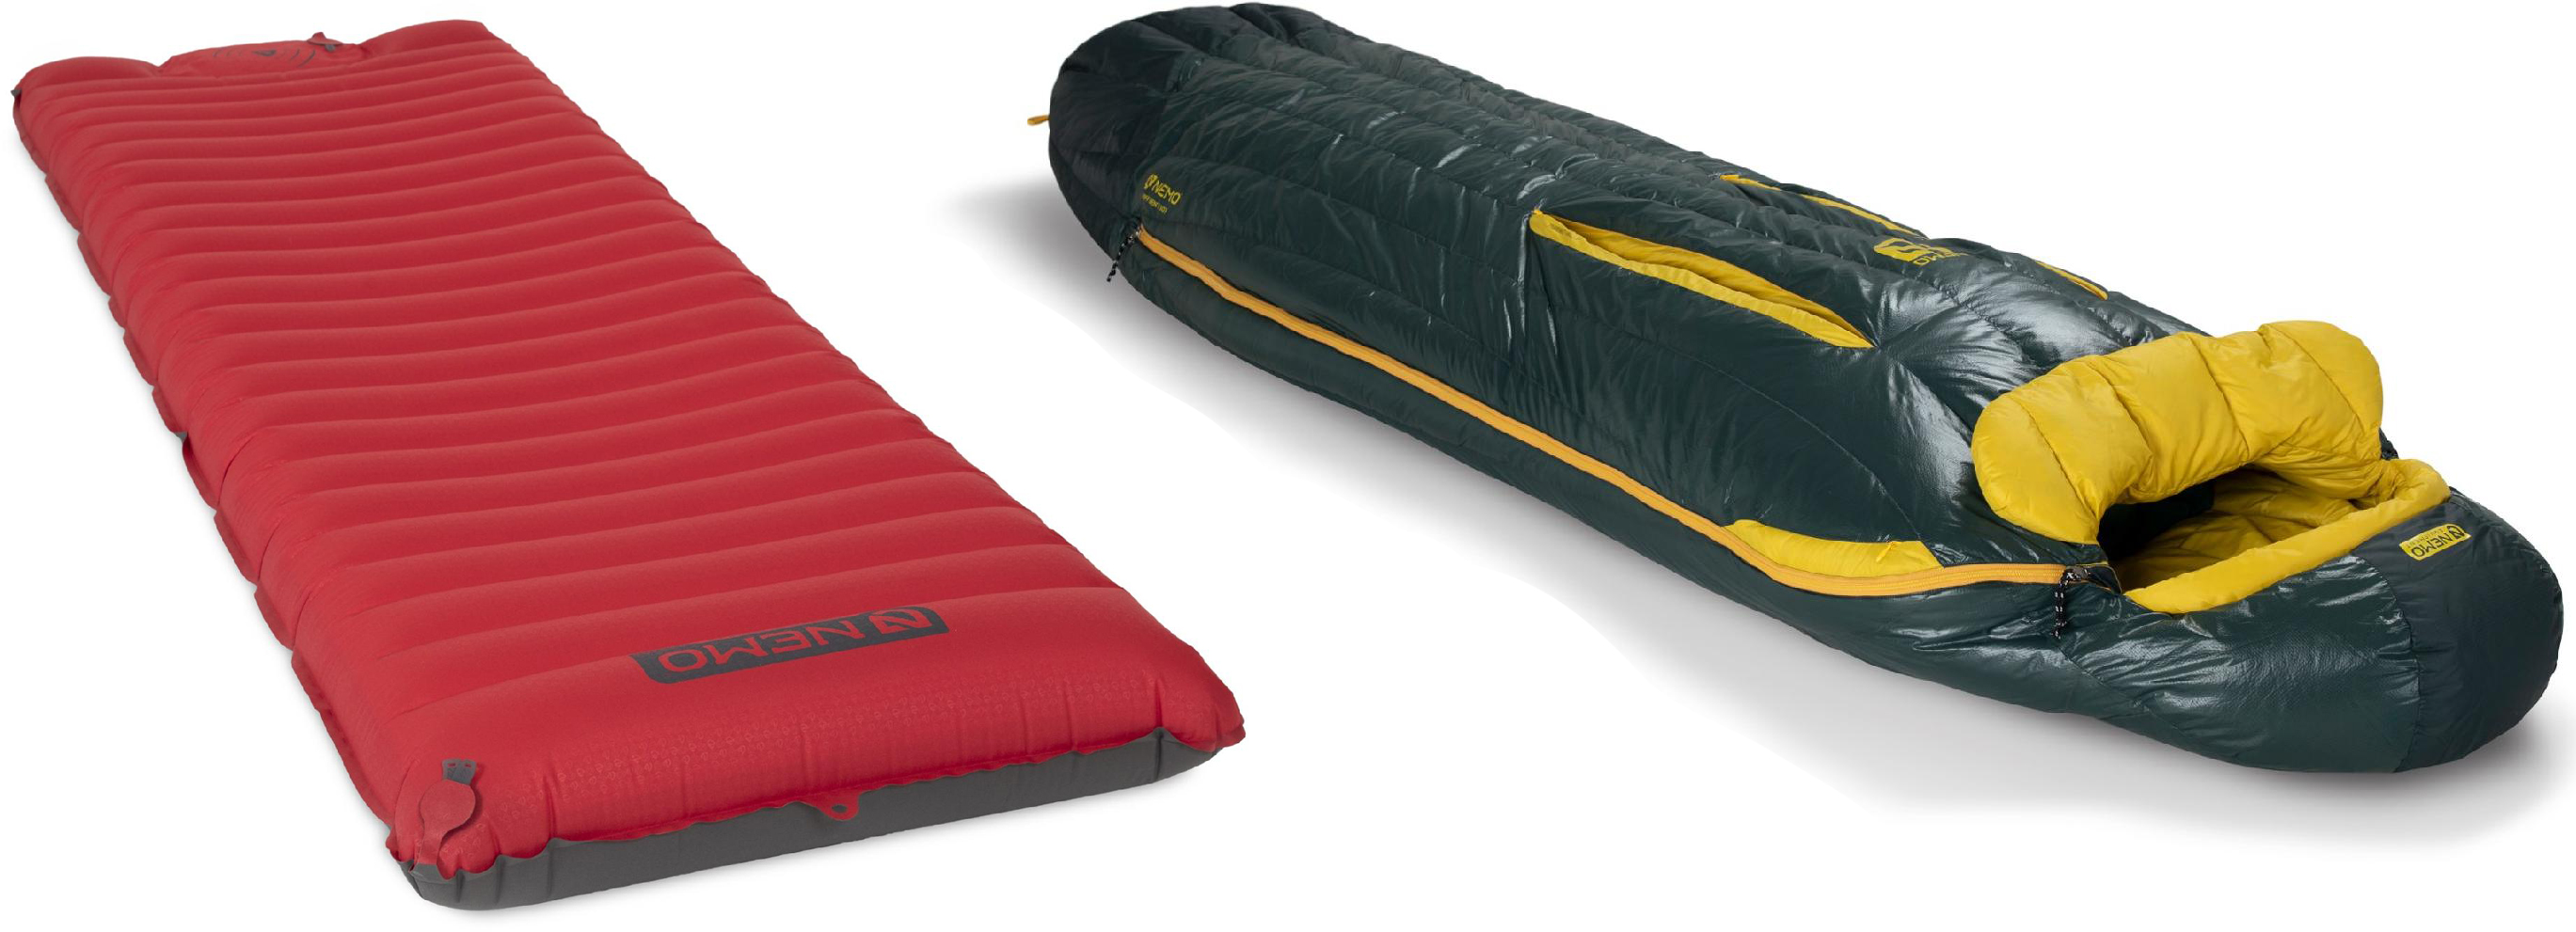 NEMO Sleeping Bag and sleeping pad